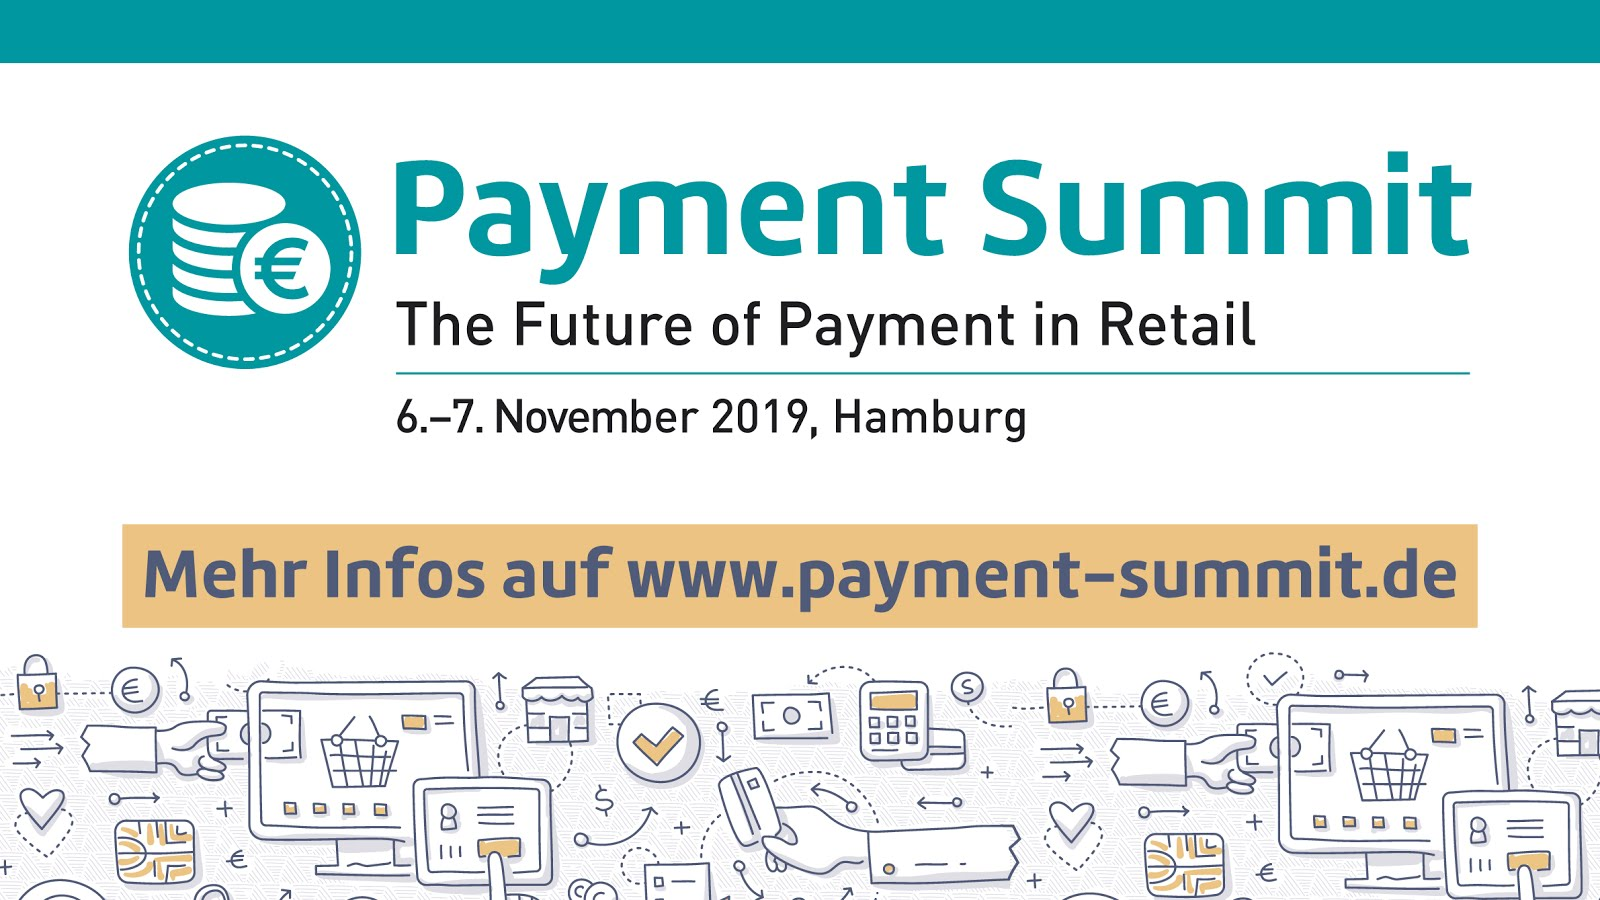 HANSEPARTNER: Payment Summit Hamburg 2019